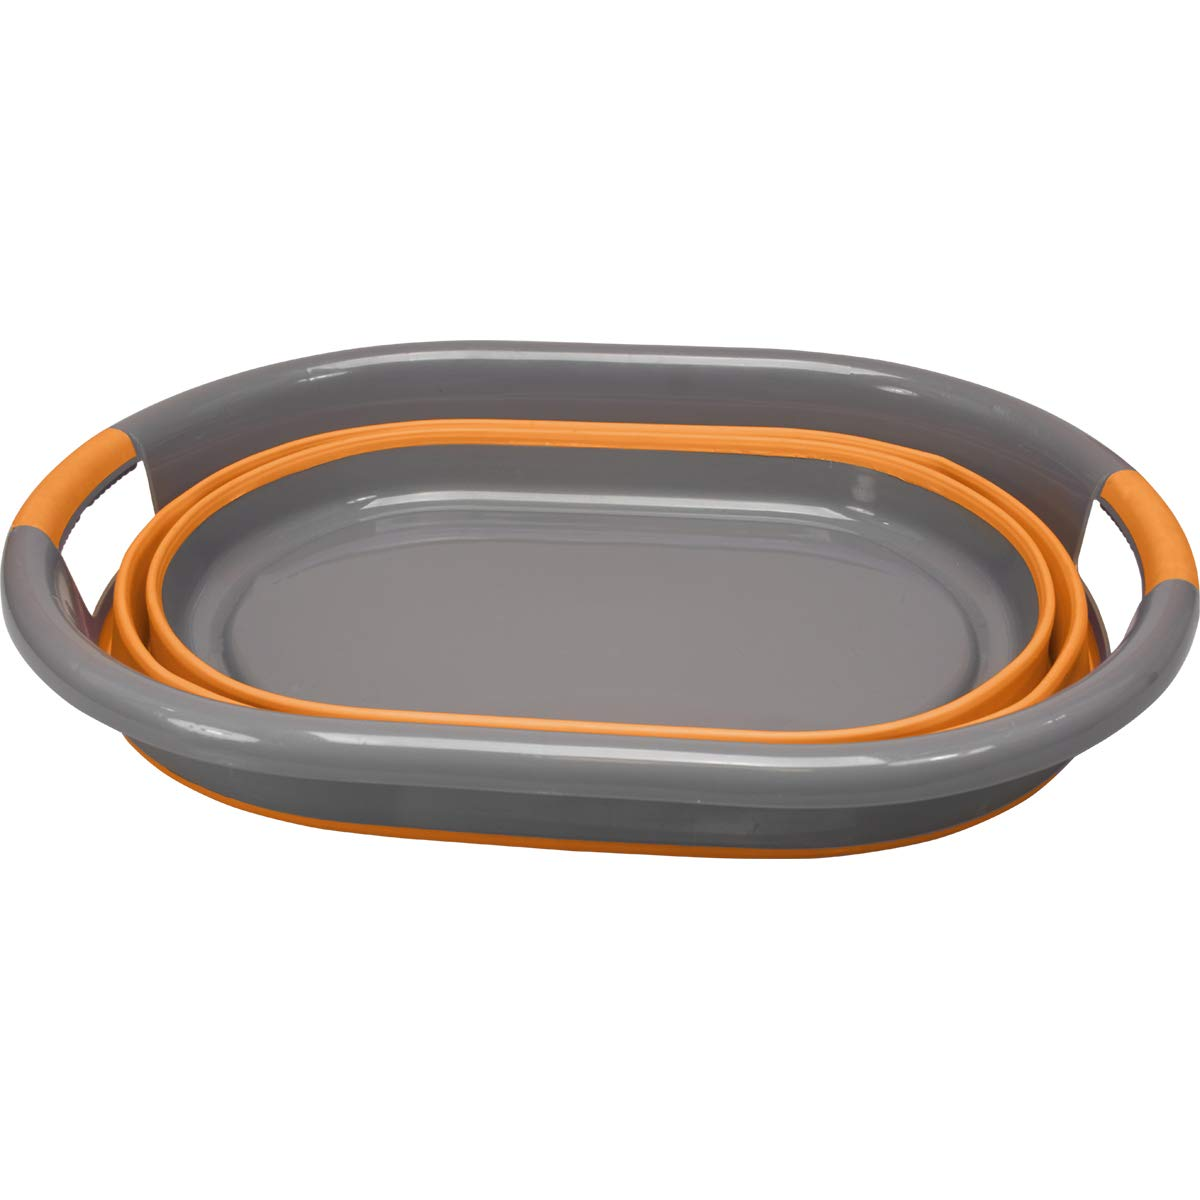 Sink Like Shape and TPR Construction for Camping UST FlexWare Collapsible Tub with Dual Handles Outdoor Survival and Home Hiking